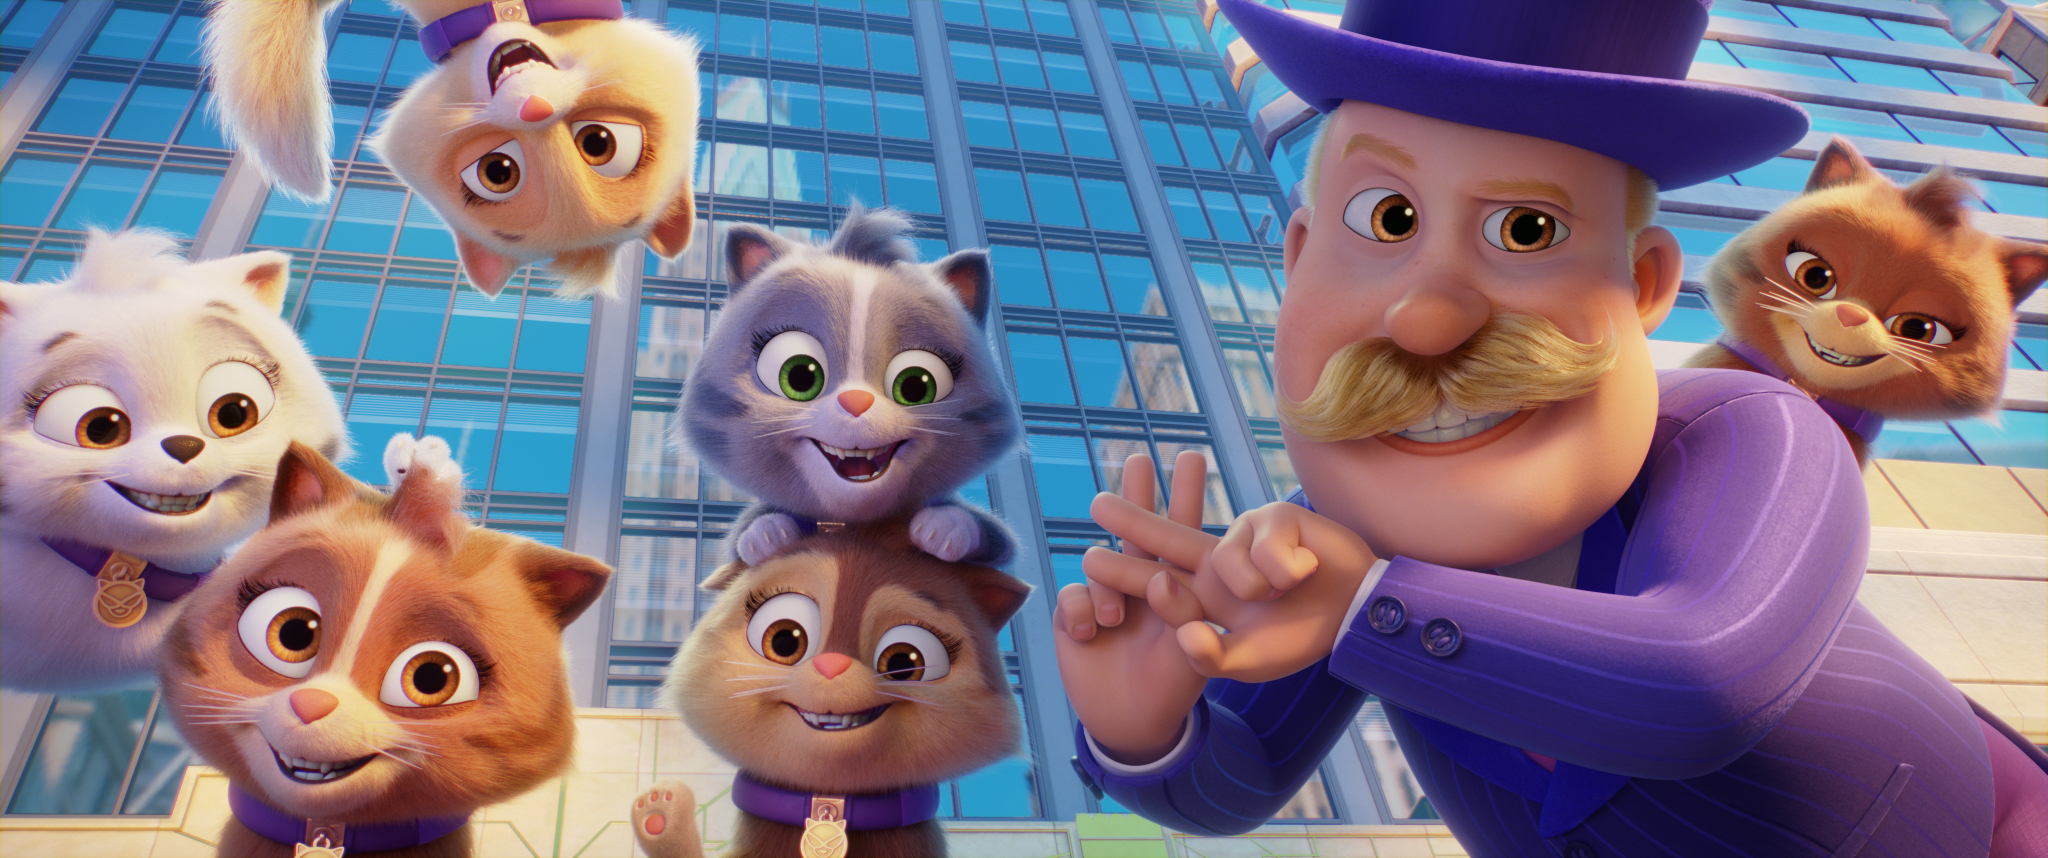 Mayor Humdinger (voiced by Ron Pardo) in PAW PATROL: THE MOVIE from Paramount Pictures. Photo Credit: Courtesy of Spin Master.